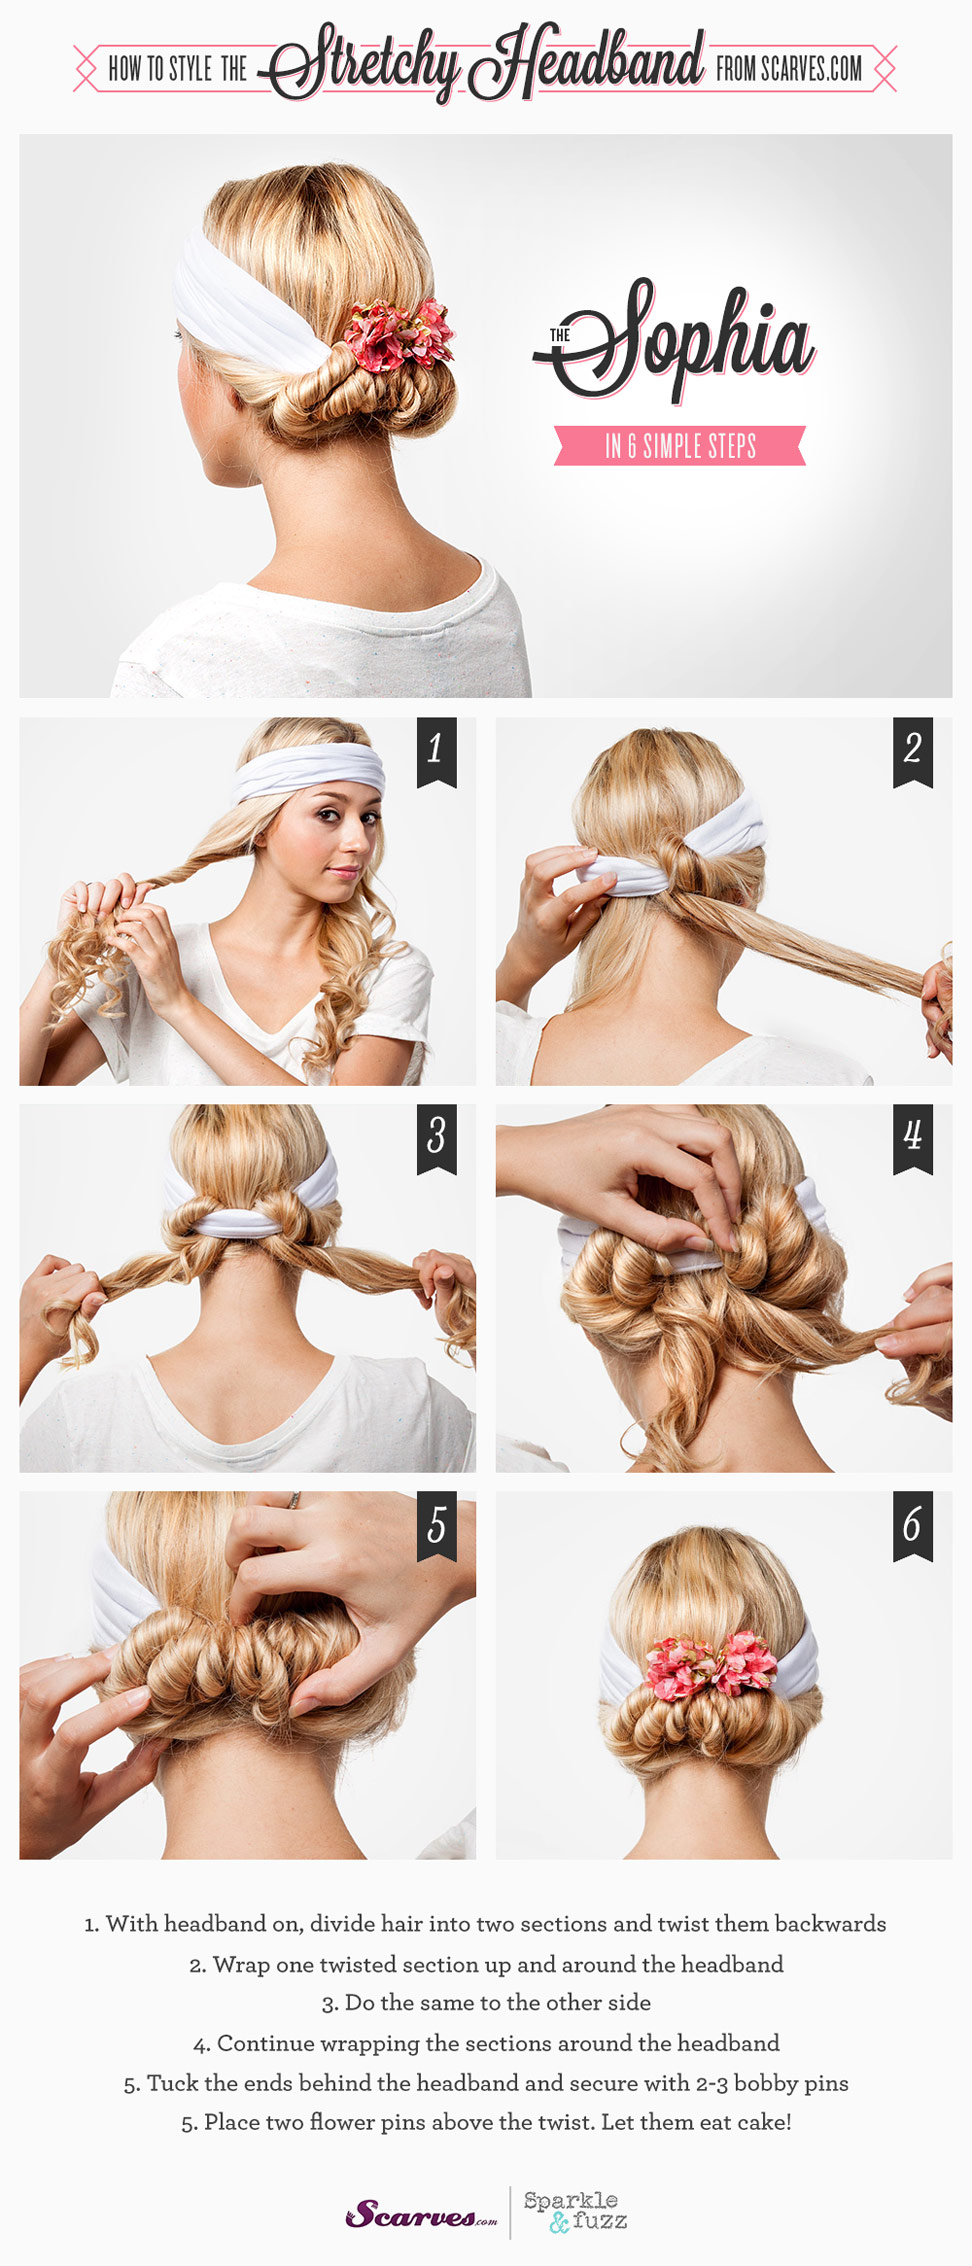 The Sophia - How to Style a Stretchy Headband